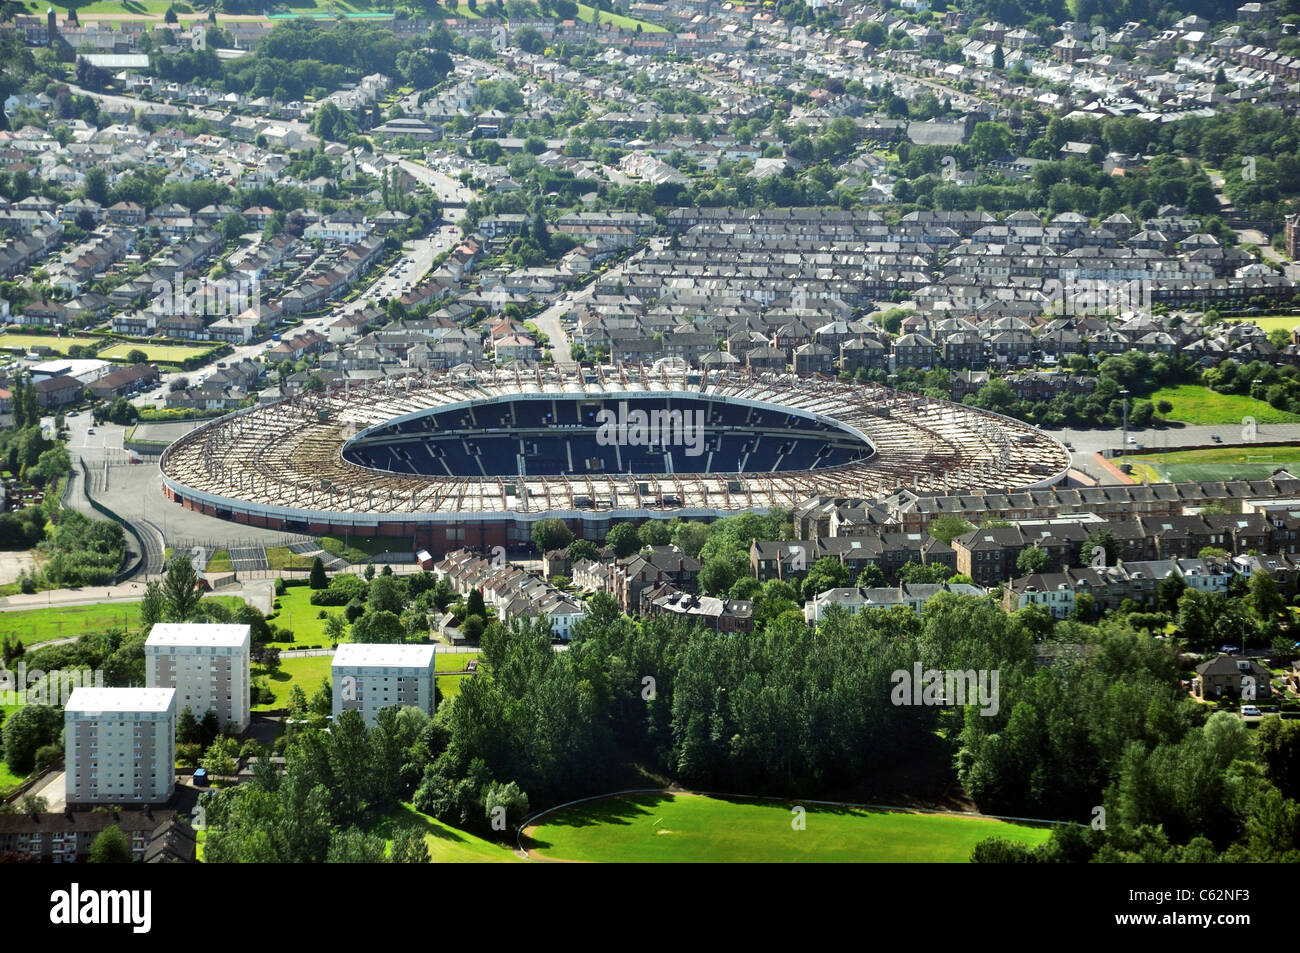 Scotland's national football stadium, Hampden Park, Glasgow, from the air - Stock Image